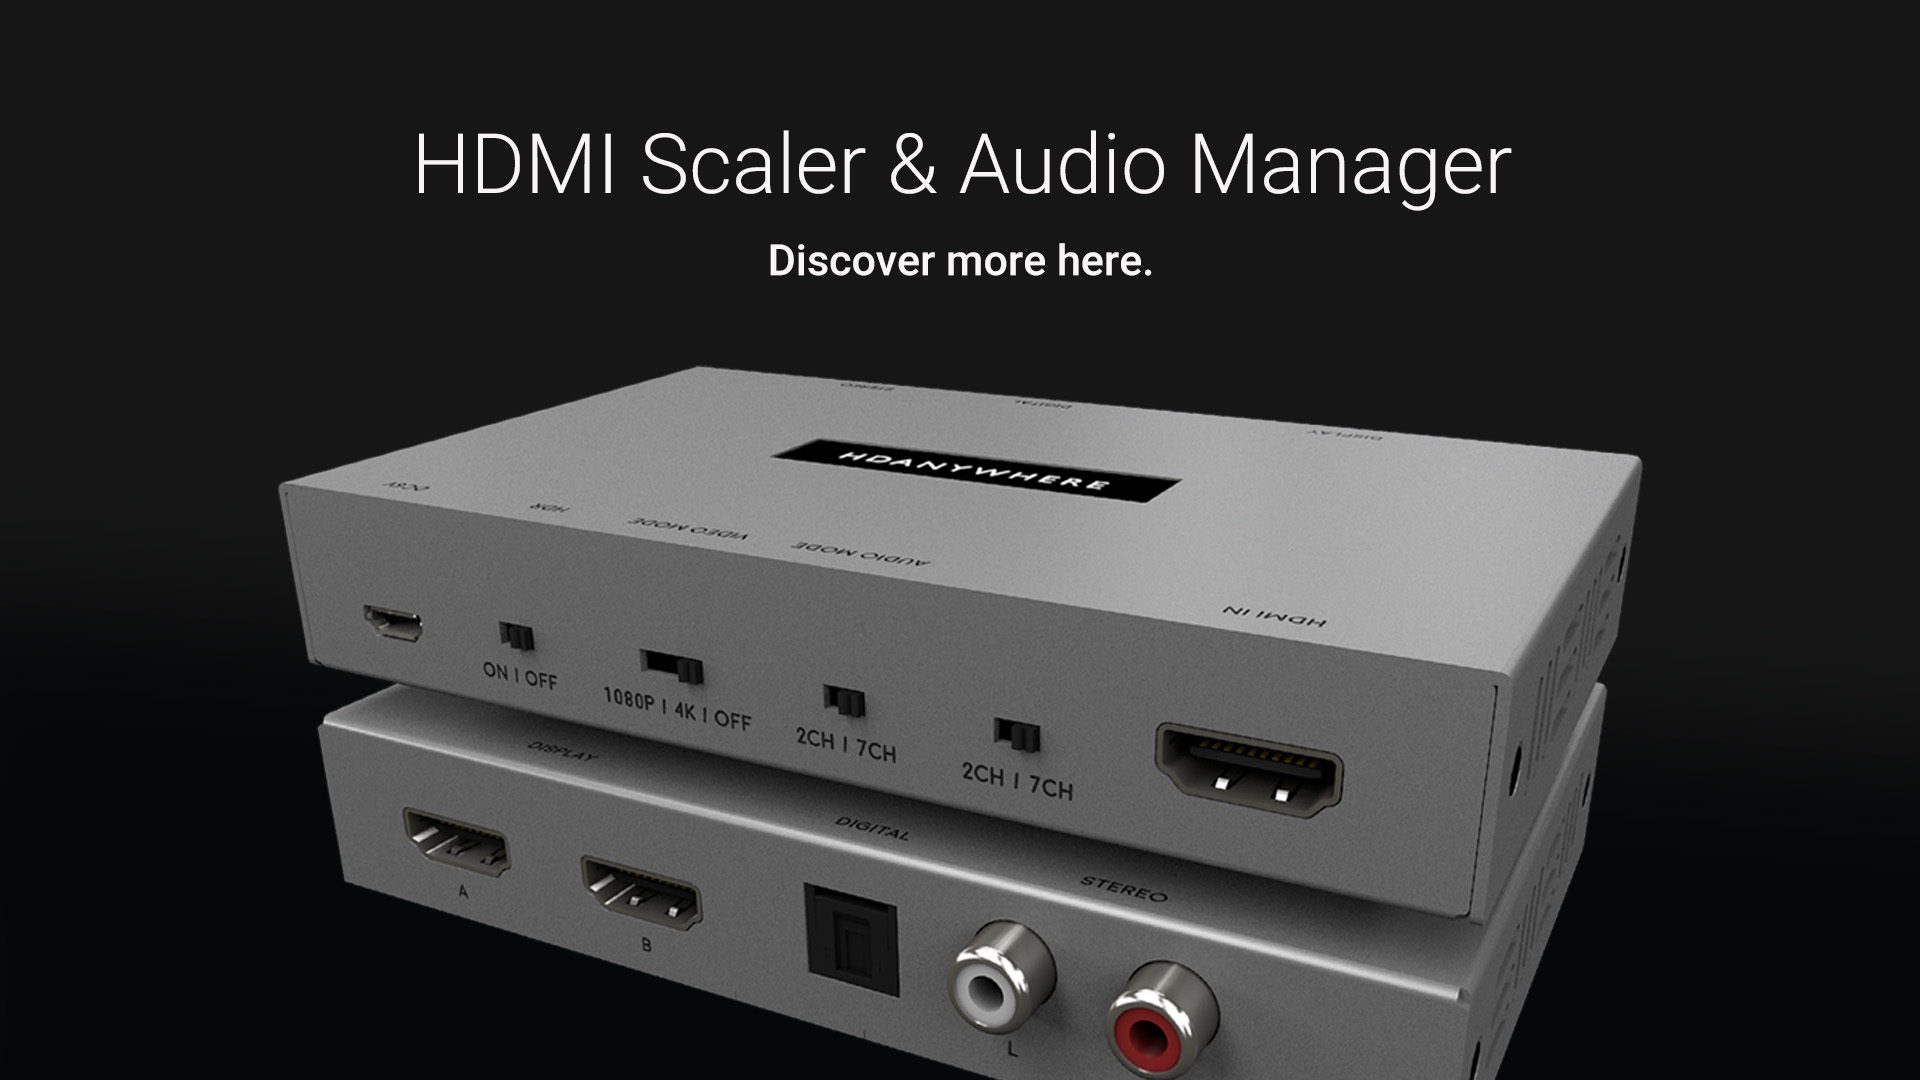 HDMI Scaler & Audio Manager